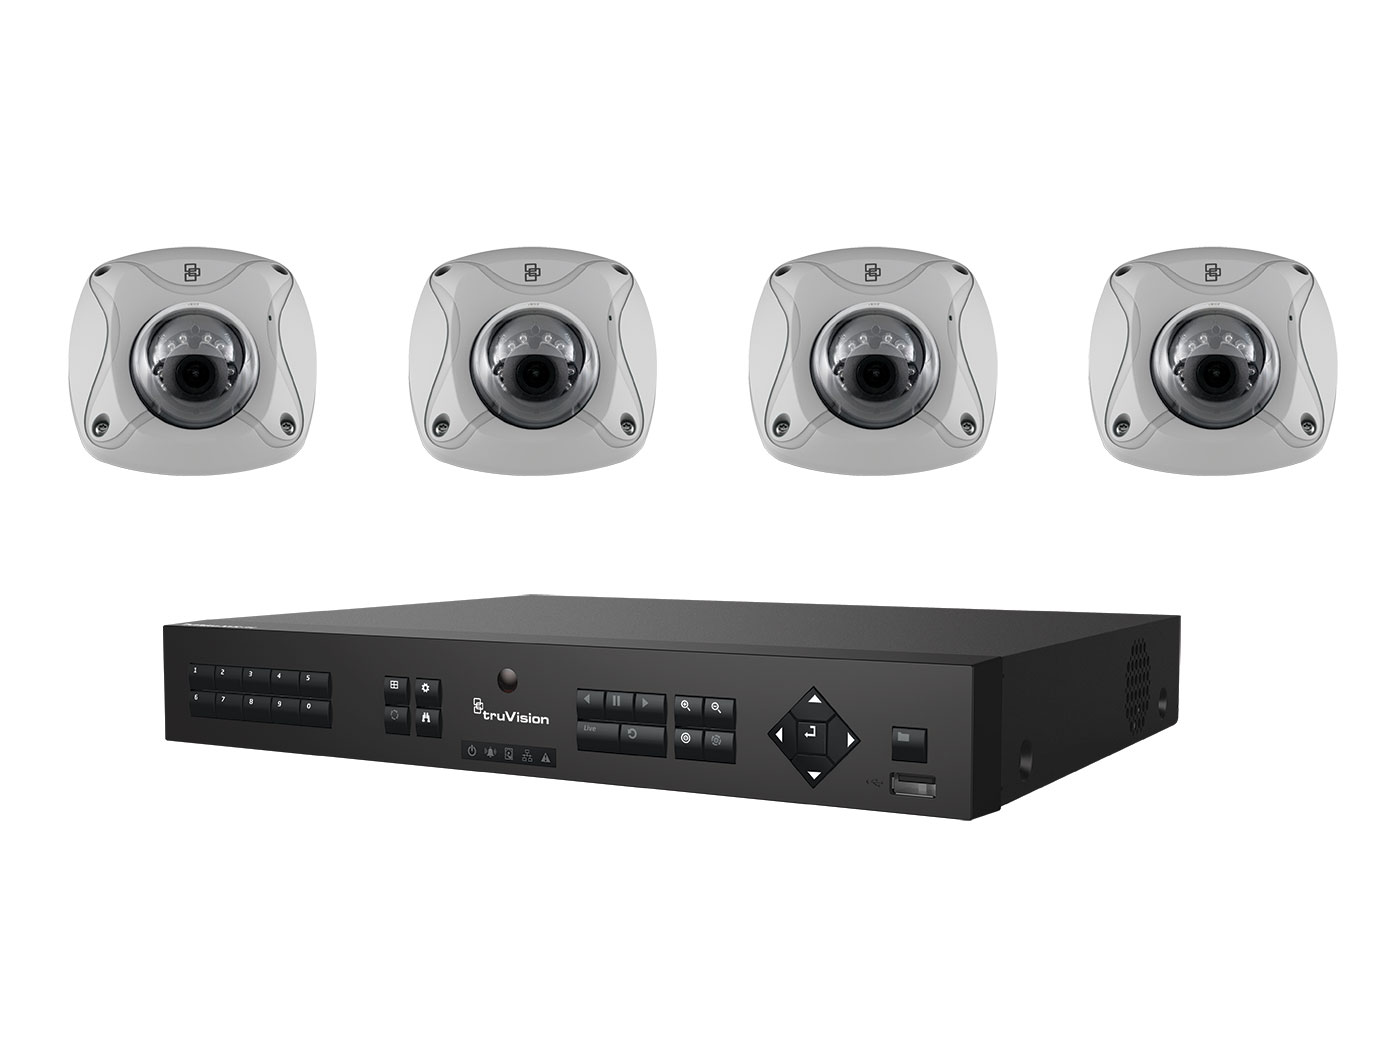 TVN-1104-KW2 INTERLOGIX 4-Channel NVR w/4 2MPx (2.8mm) IR Wedge Cameras Video Kit ************************* SPECIAL ORDER ITEM NO RETURNS OR SUBJECT TO RESTOCK FEE *************************